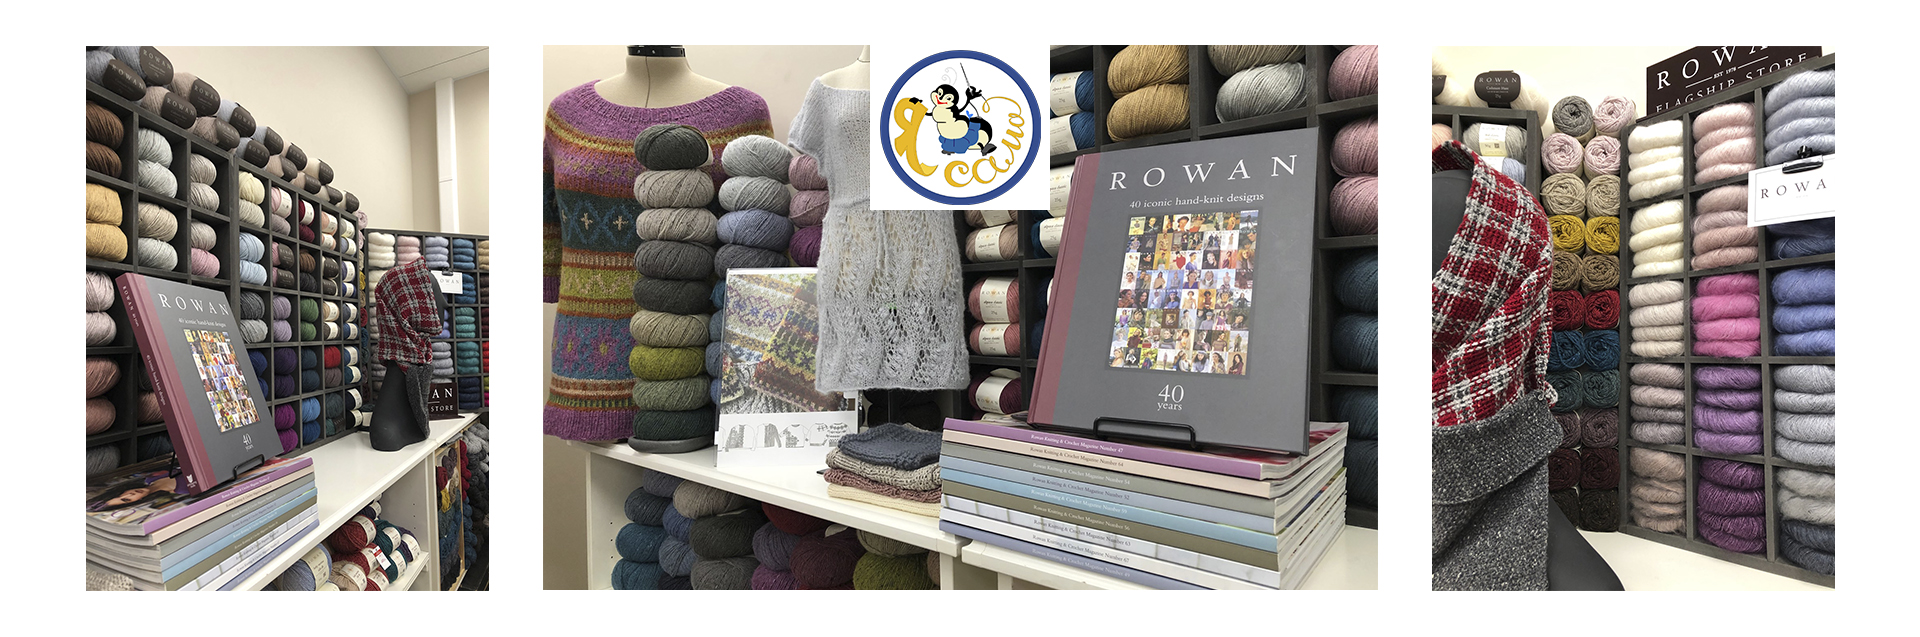 """The chain store """"Ya Sama"""" has been providing its customers with the highest quality products for handicraft during 22 years."""